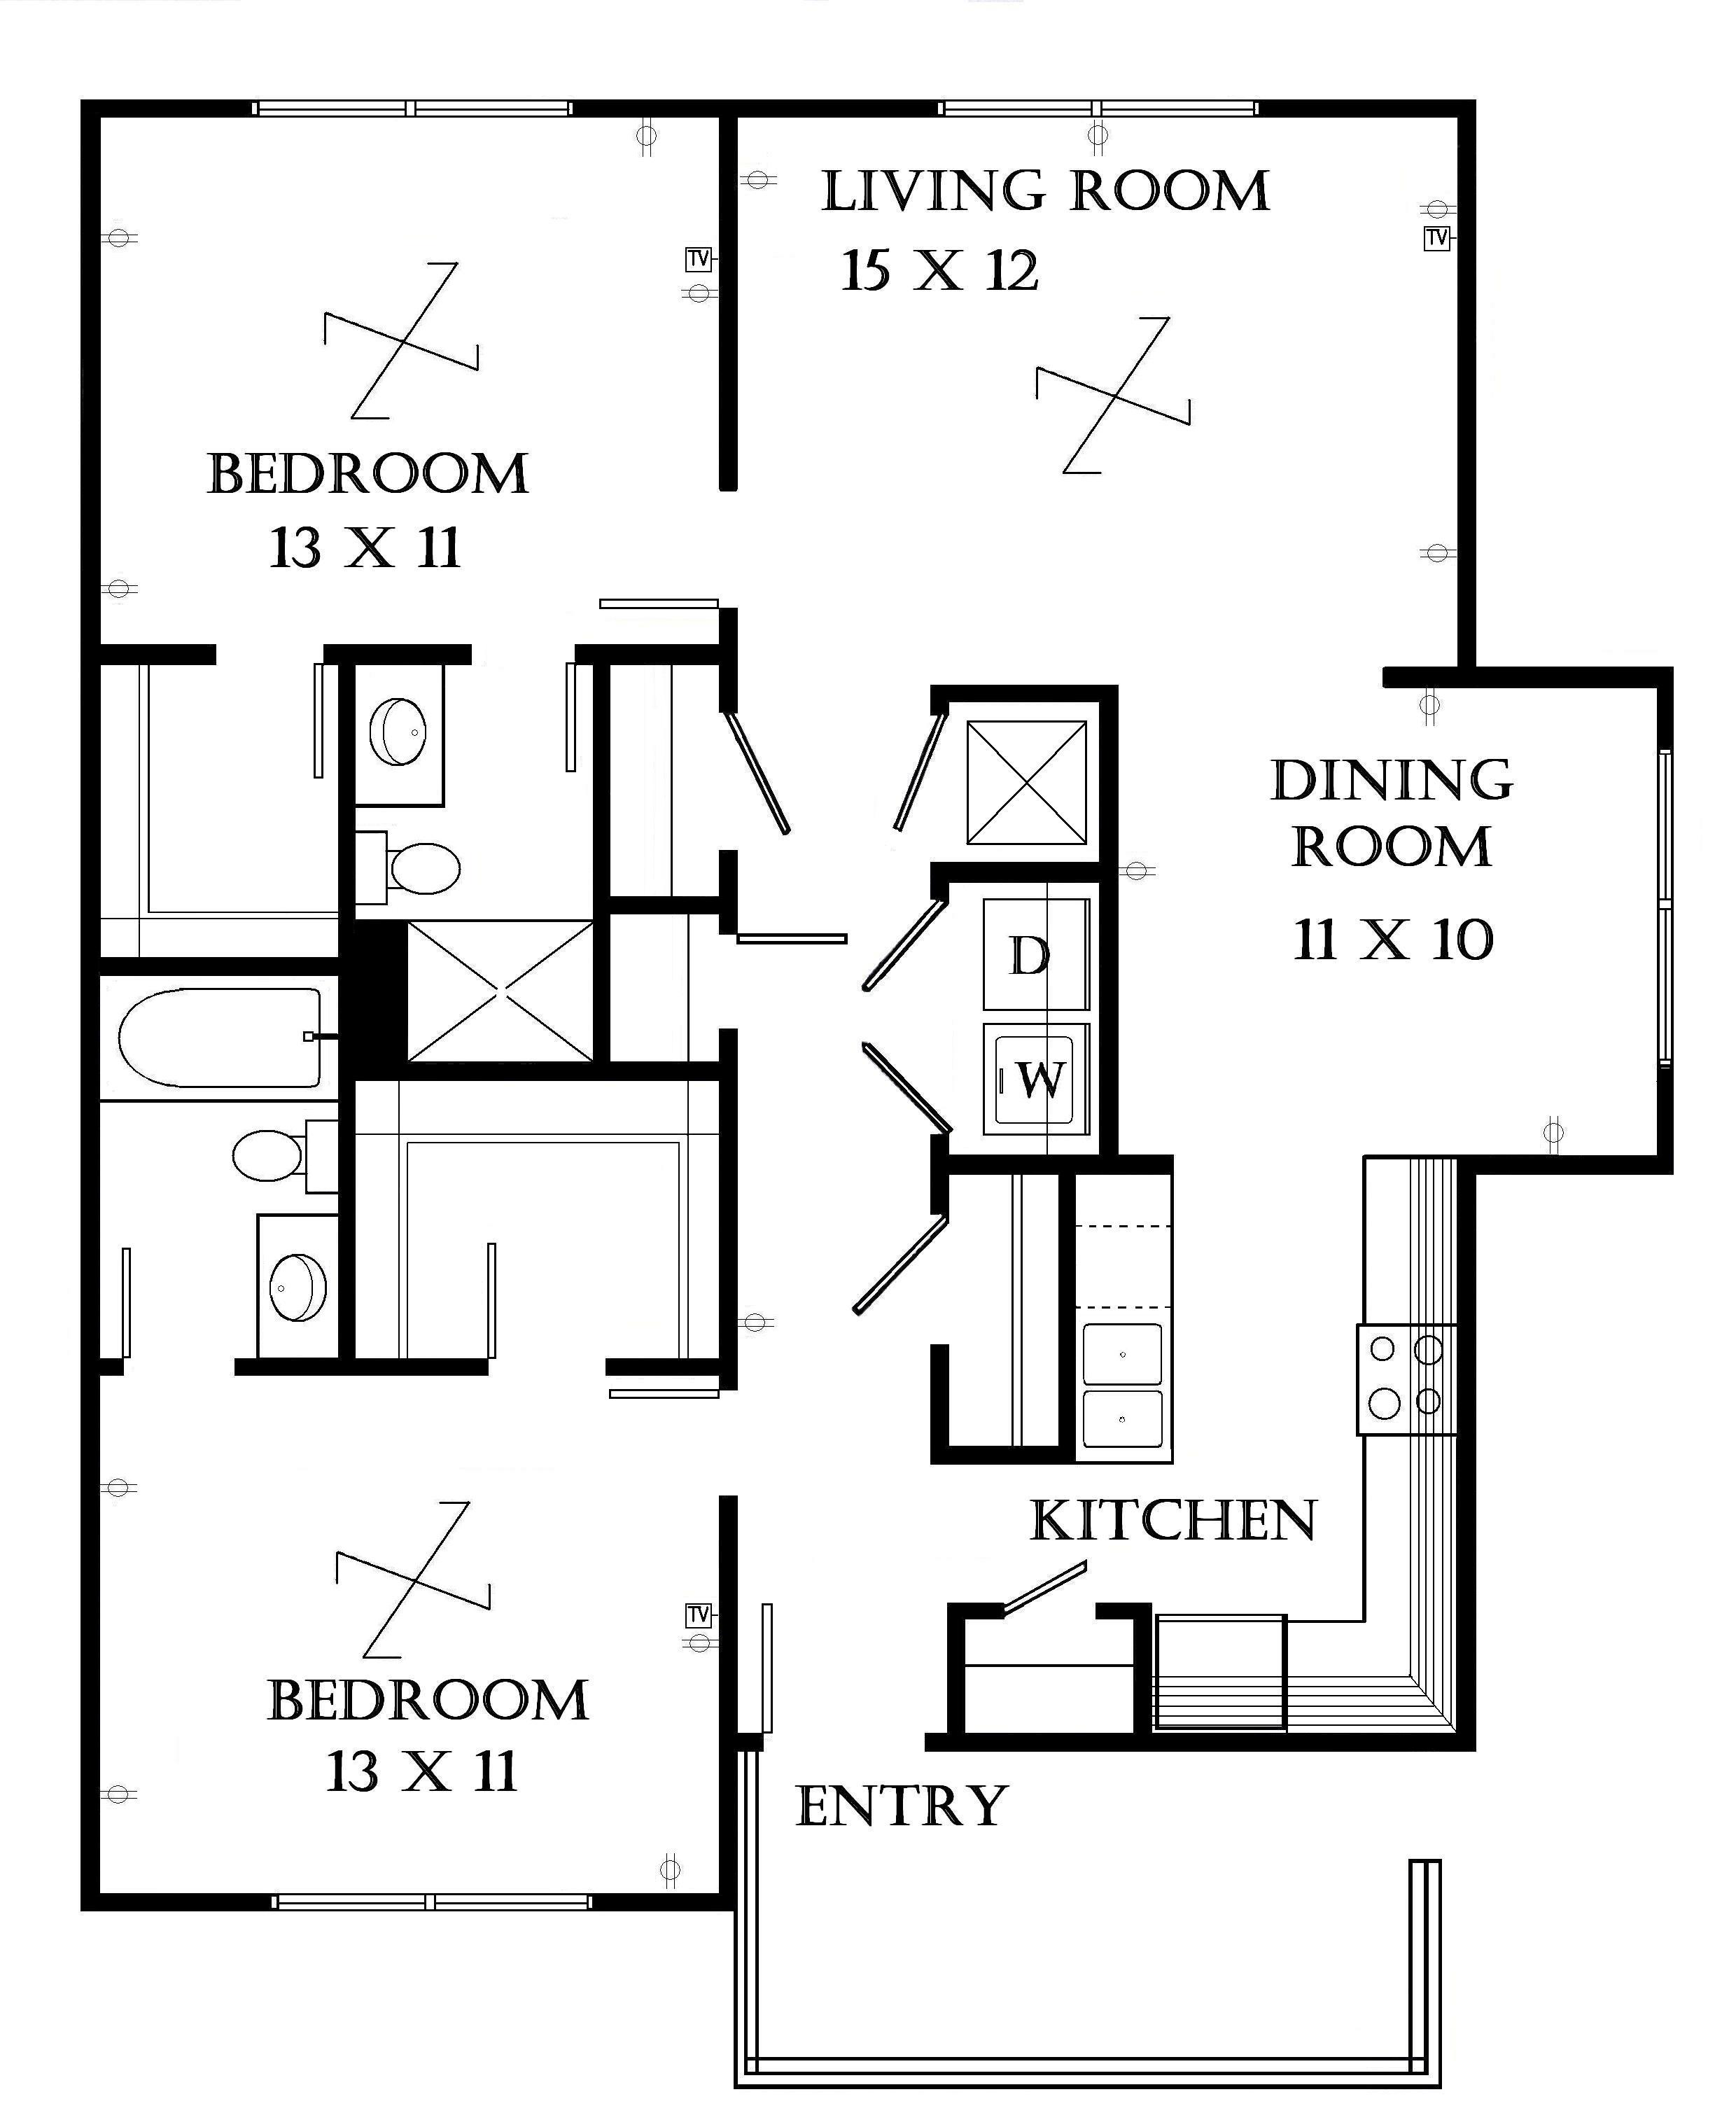 2 Bedroom 1 Bath Garage Apartment Plans Design Ideas